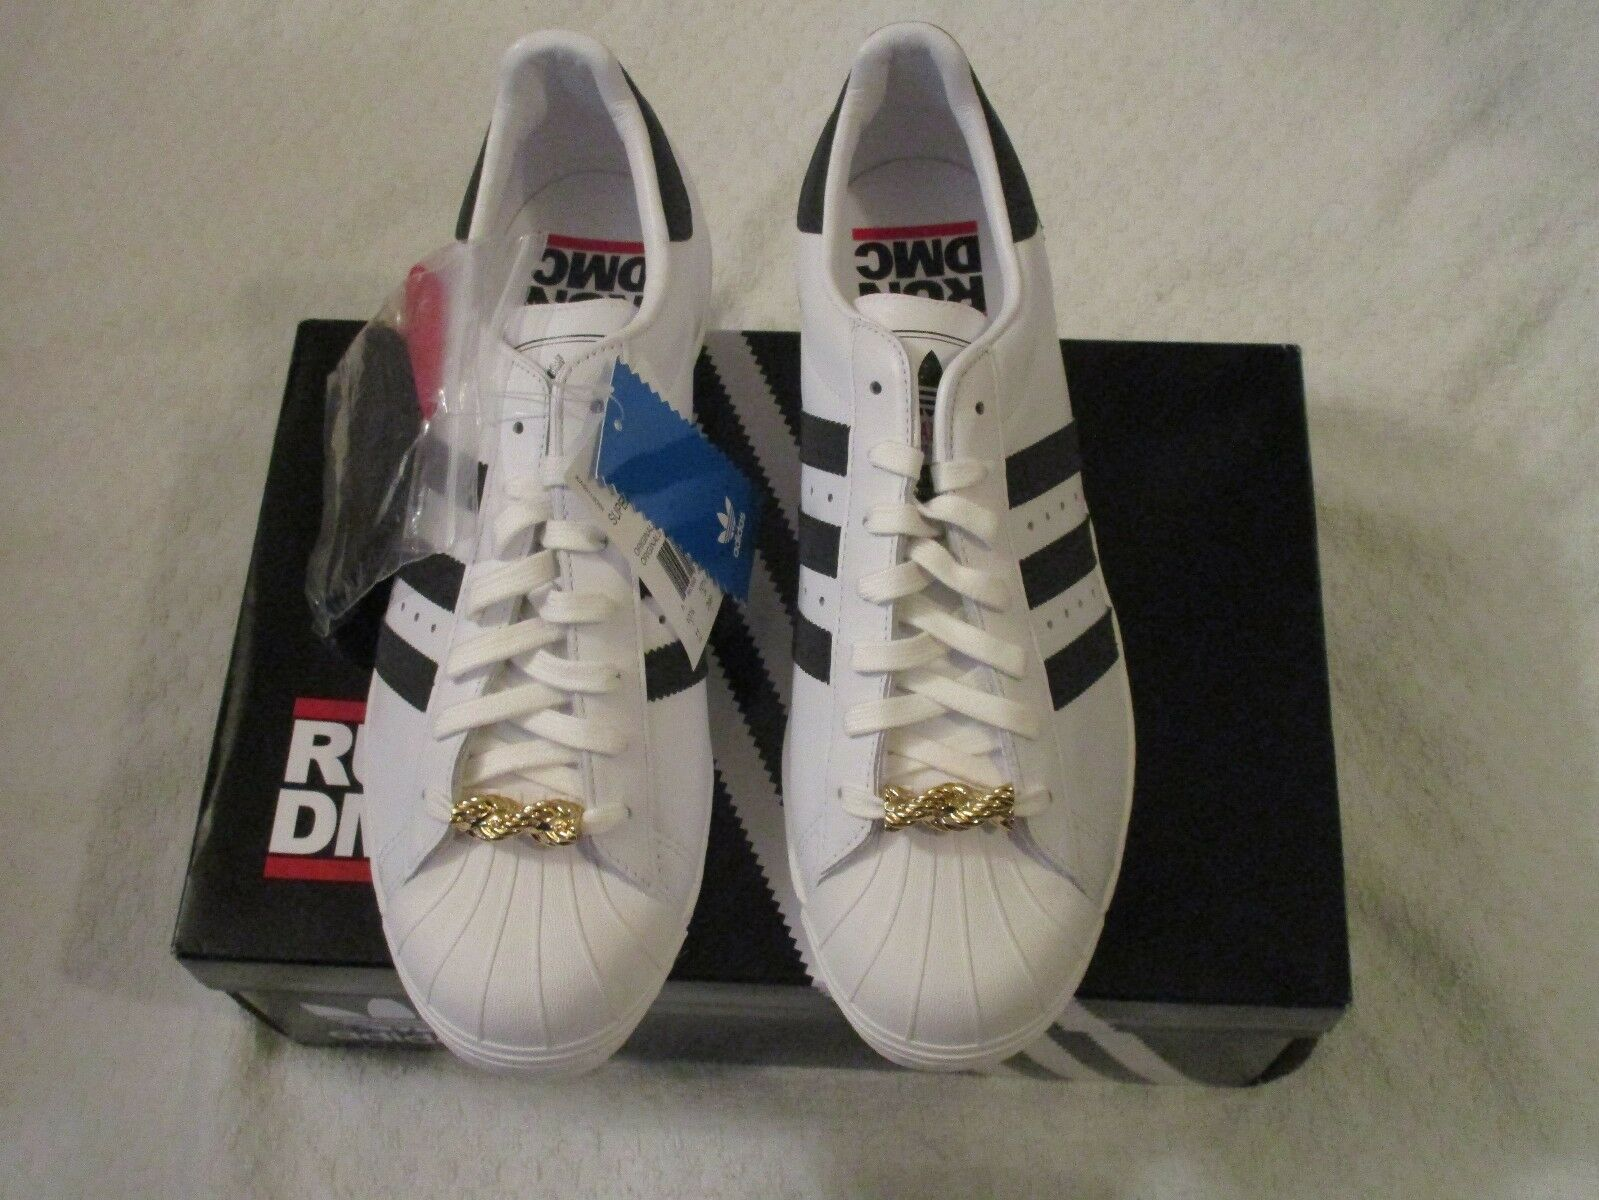 ADIDAS SUPERSTAR 80S My Adidas RUN DMC 25th Anniversary 1986 Star Wars B